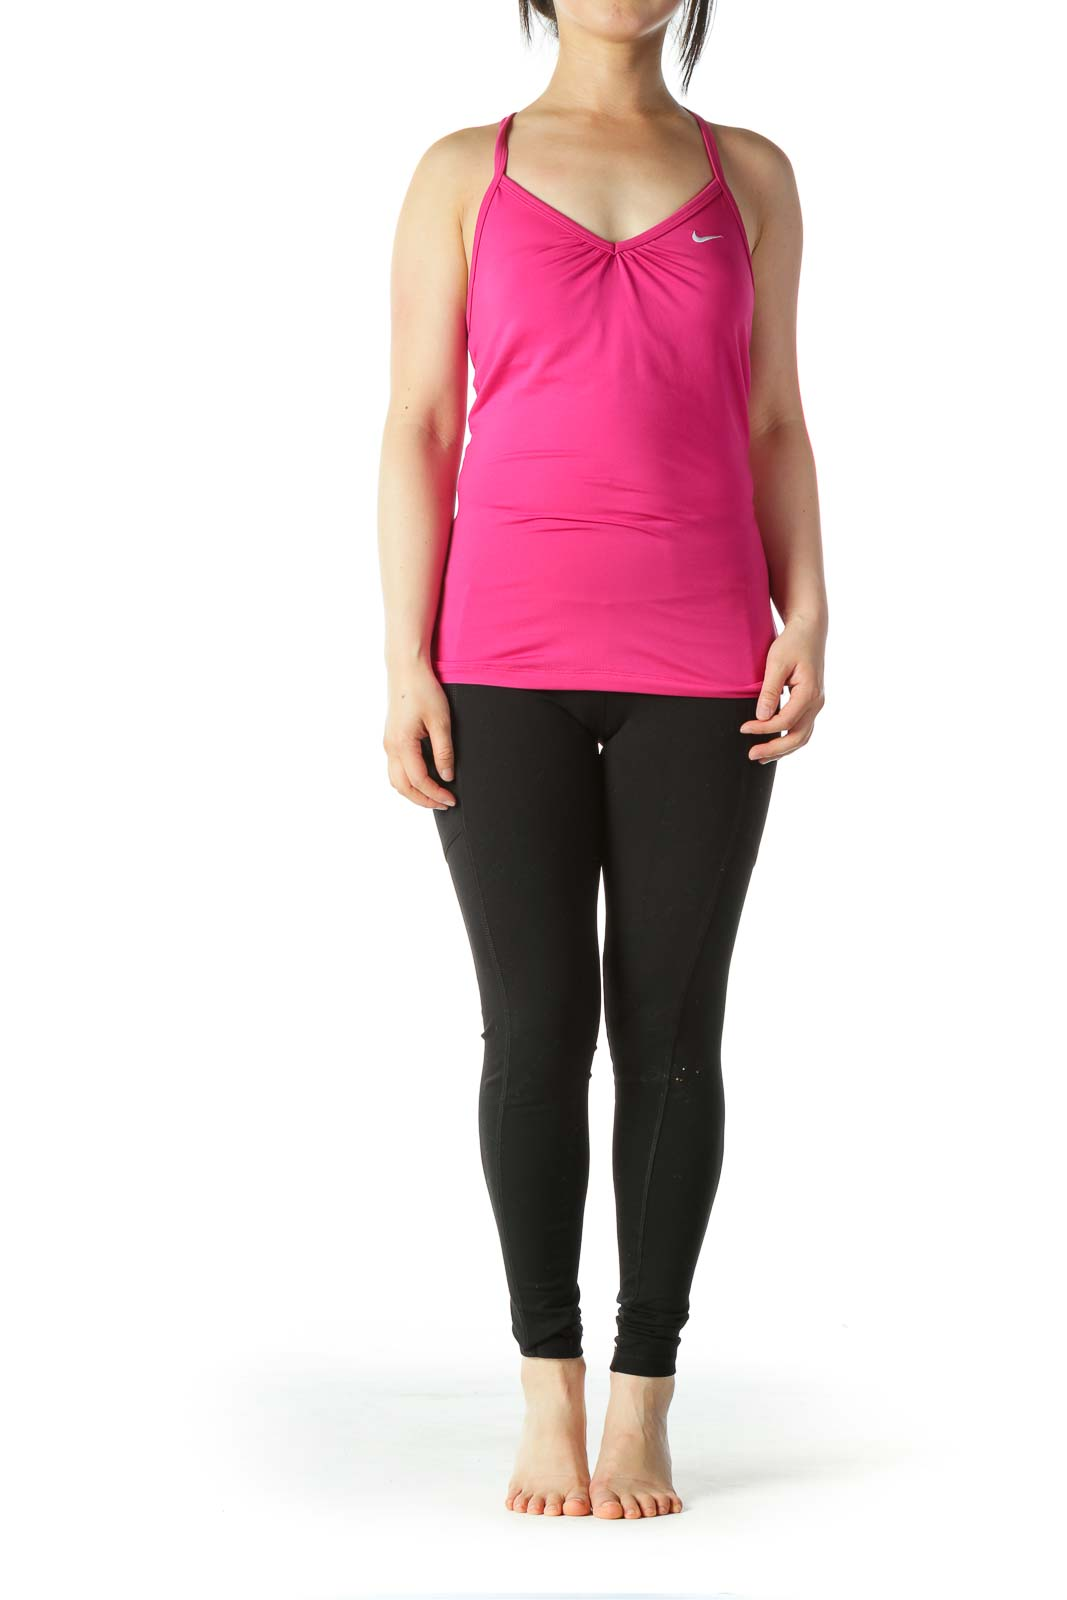 Hot-Pink Racerback Sports Top with Built-In Bra